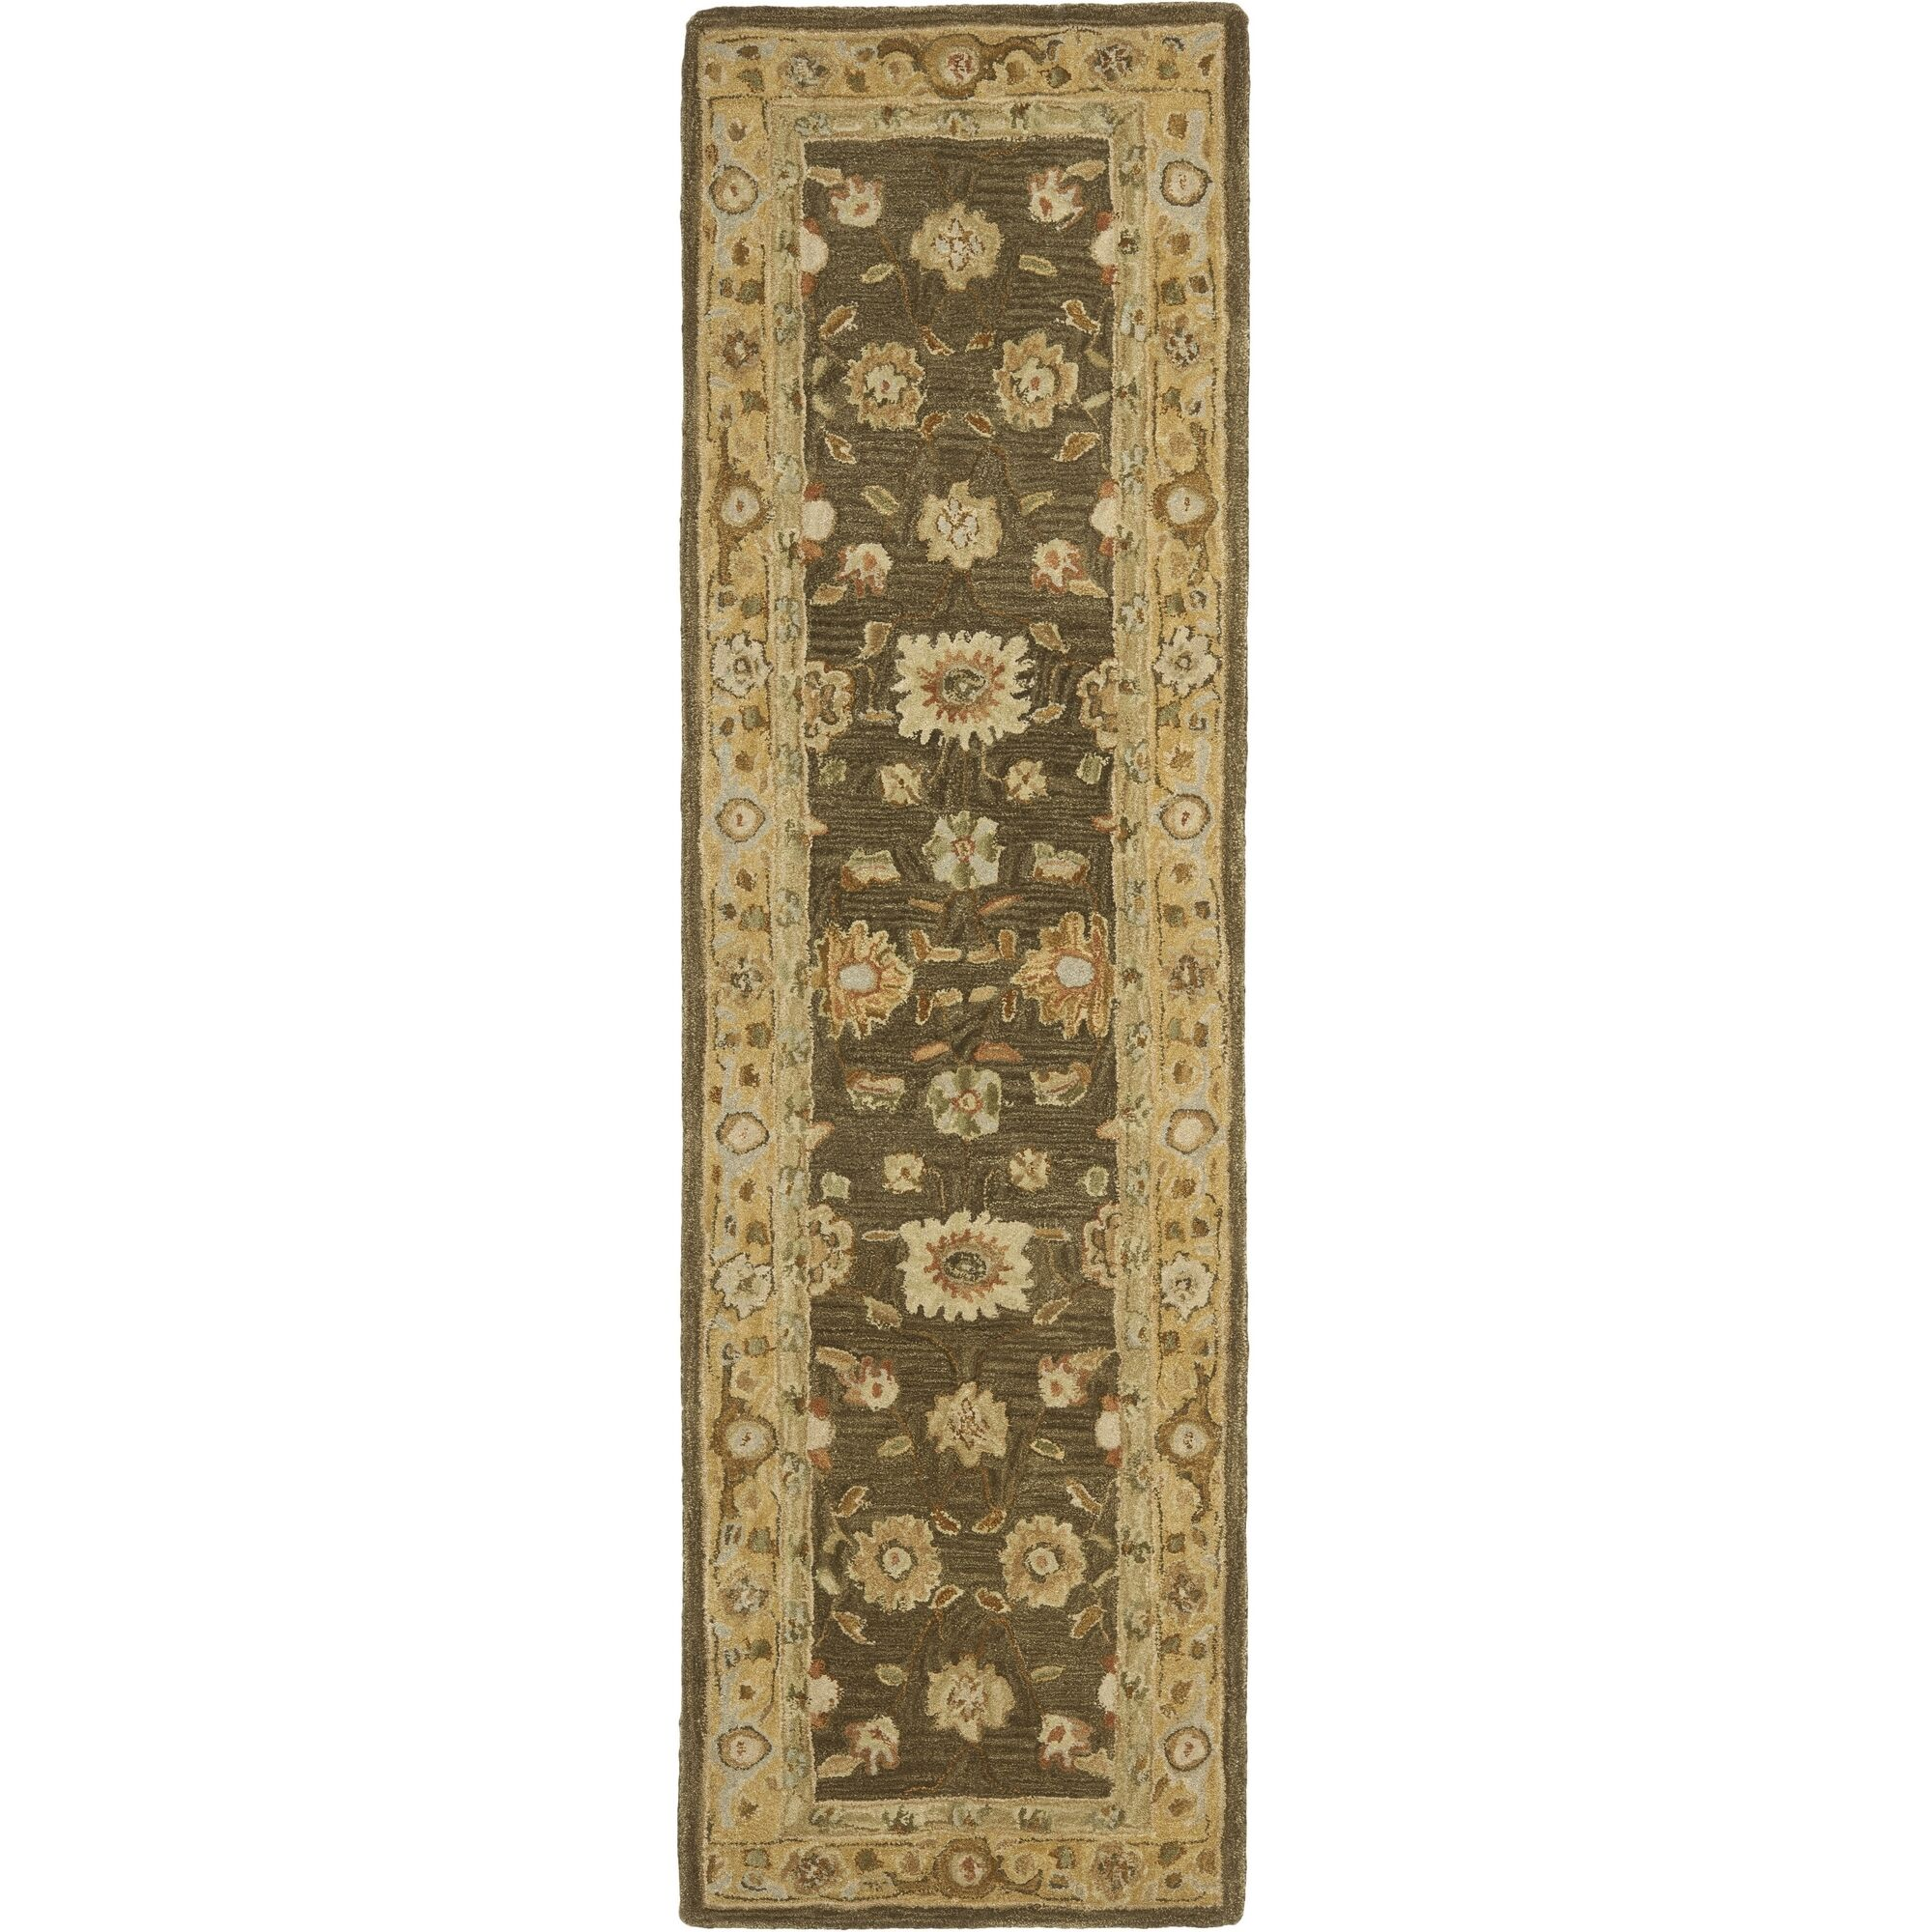 Anatolia Brown/Taupe Area Rug Rug Size: Runner 2'3